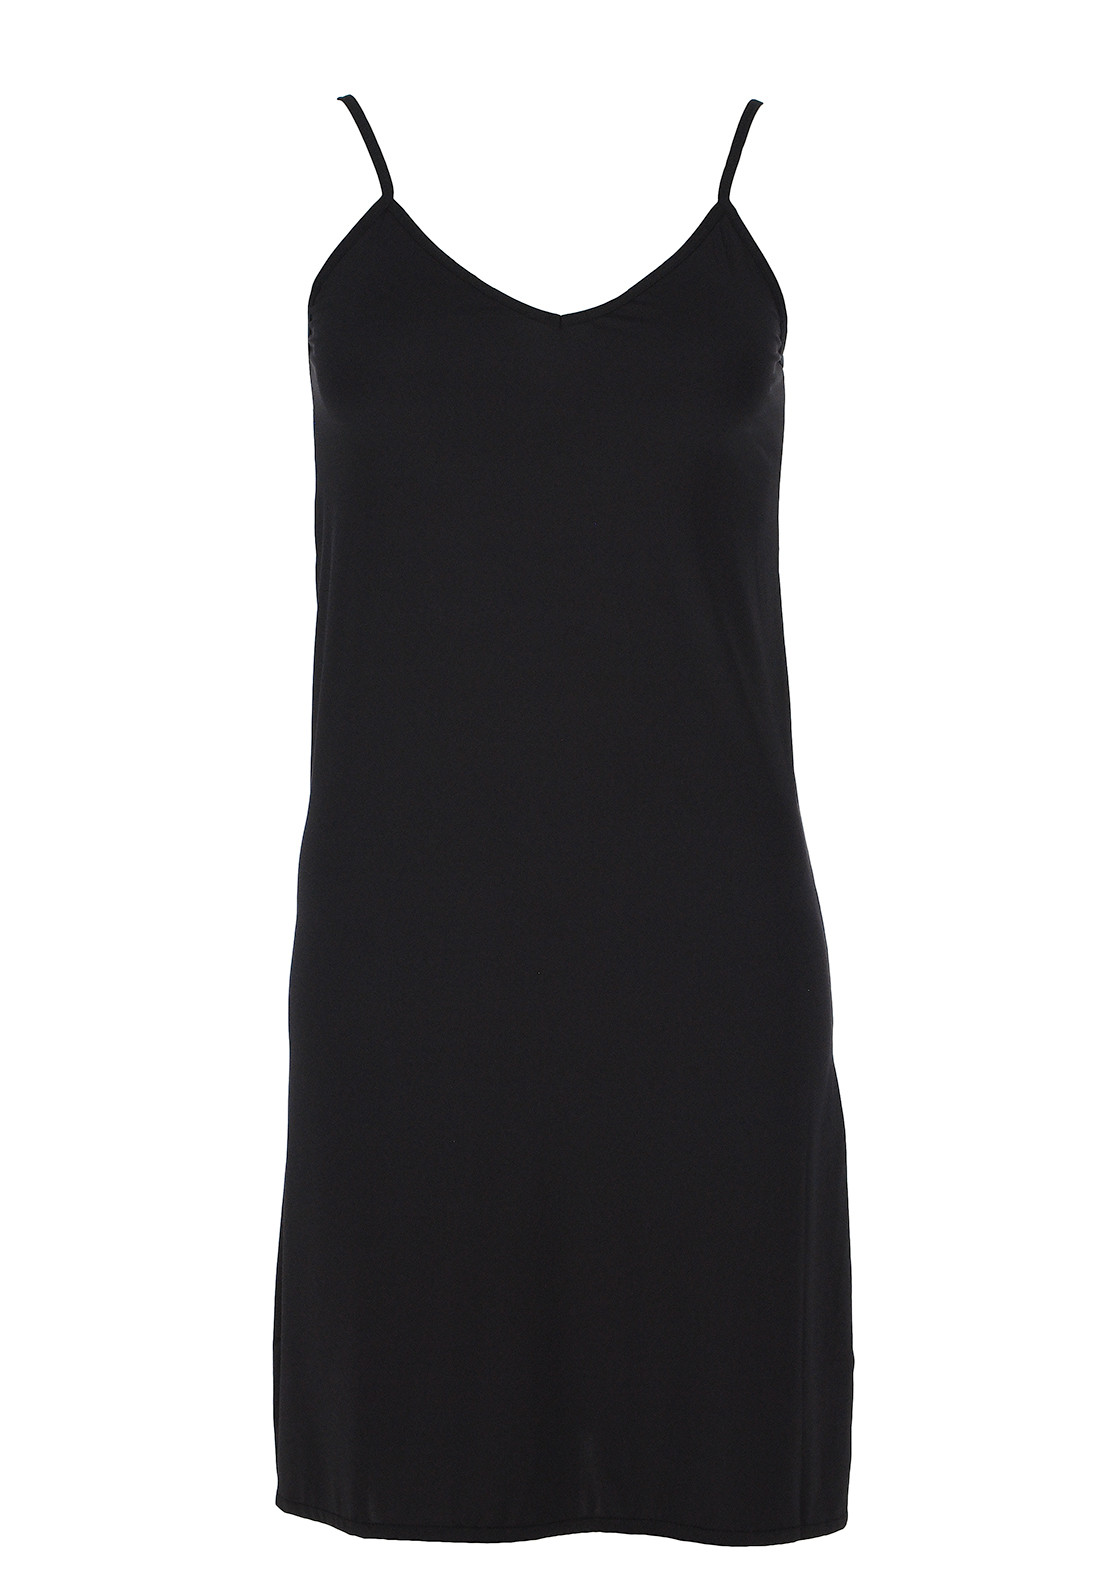 Gaspé V-Neck Slip, Black